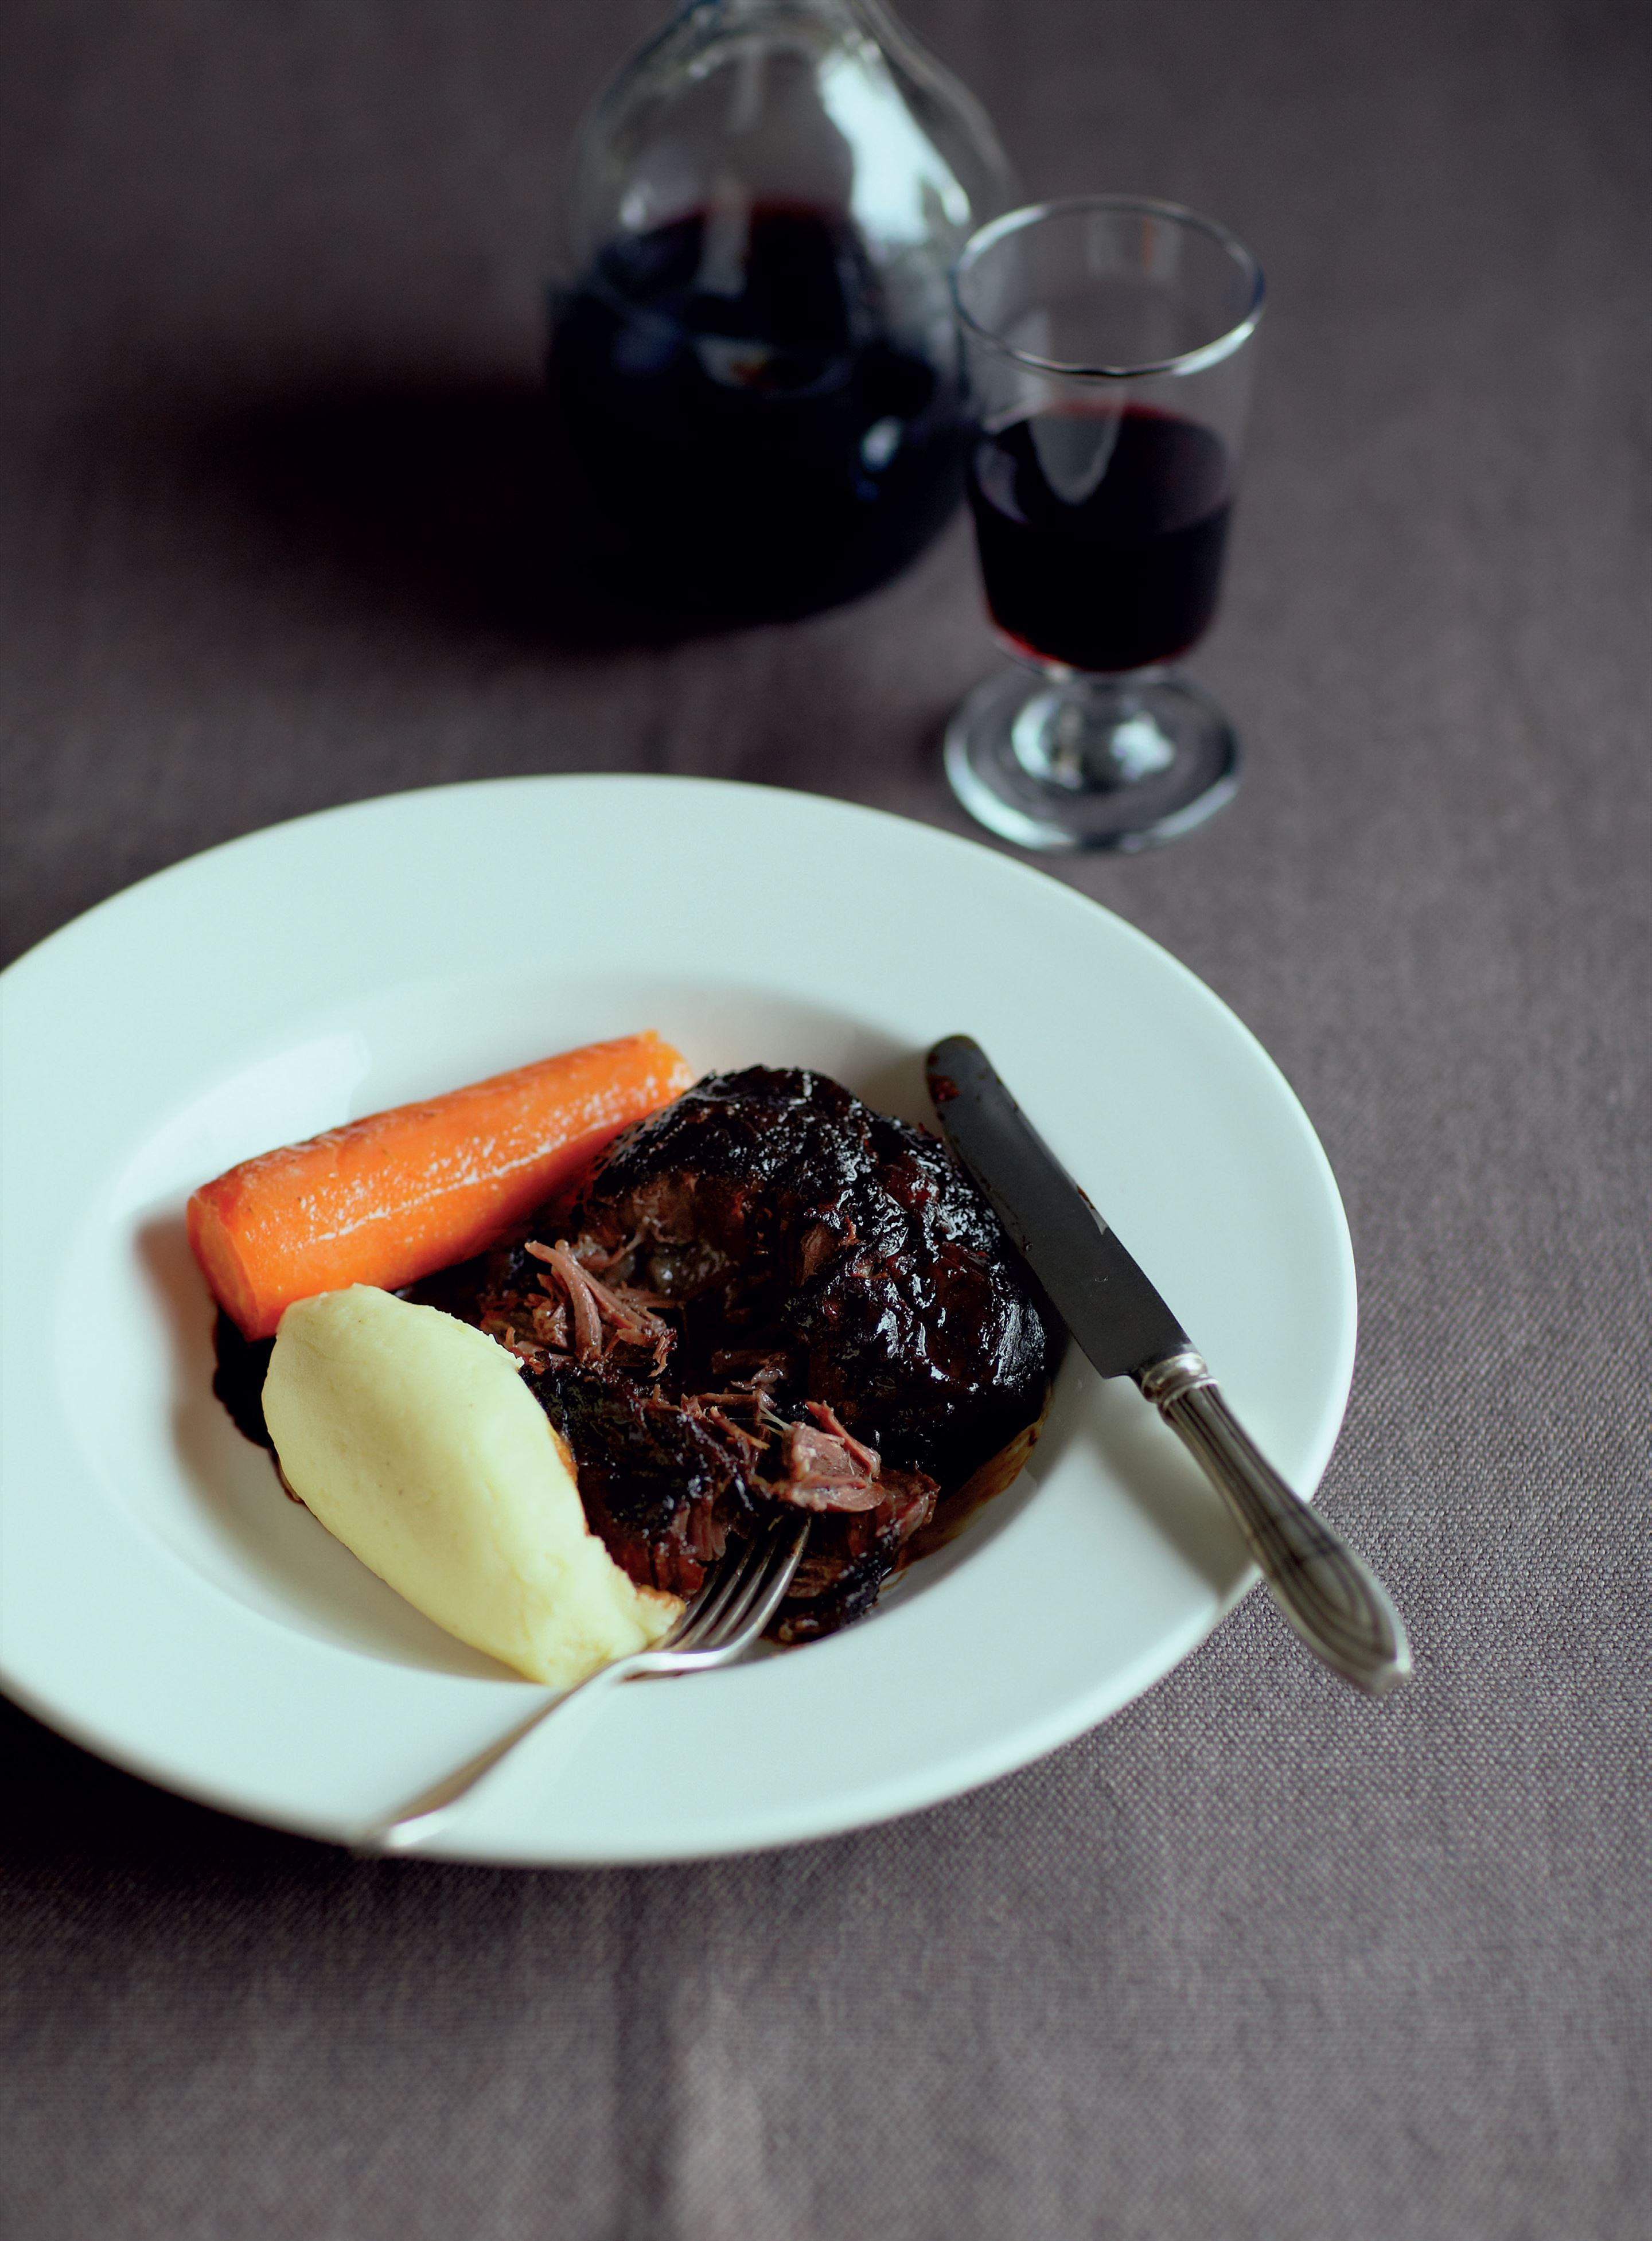 Braised beef cheeks with beer and mash